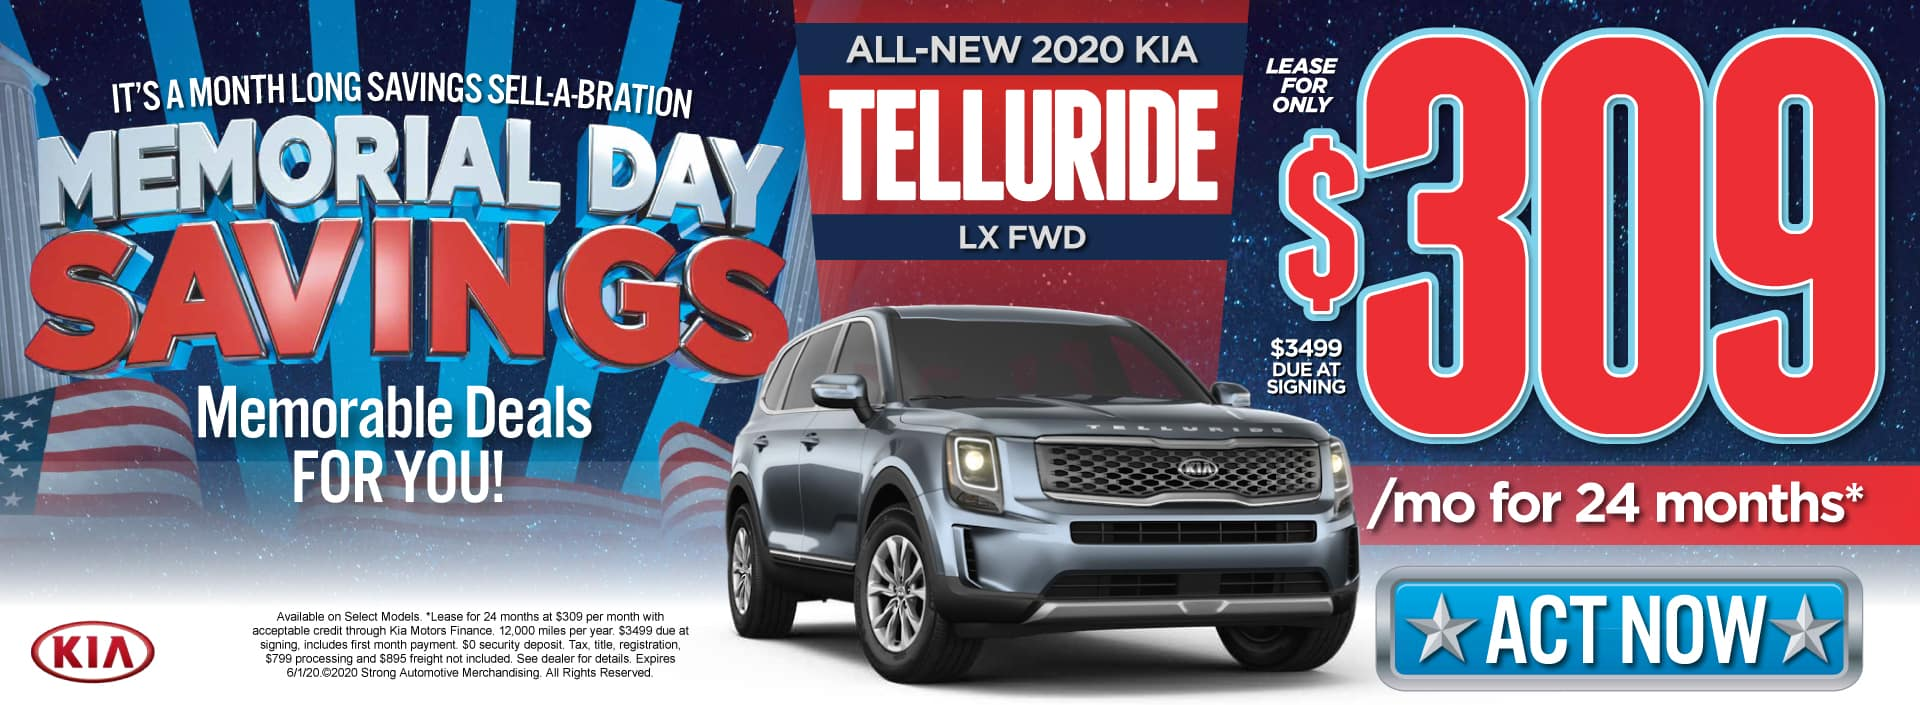 New 2020 Kia Telluride - Lease for $309 a month - Act Now